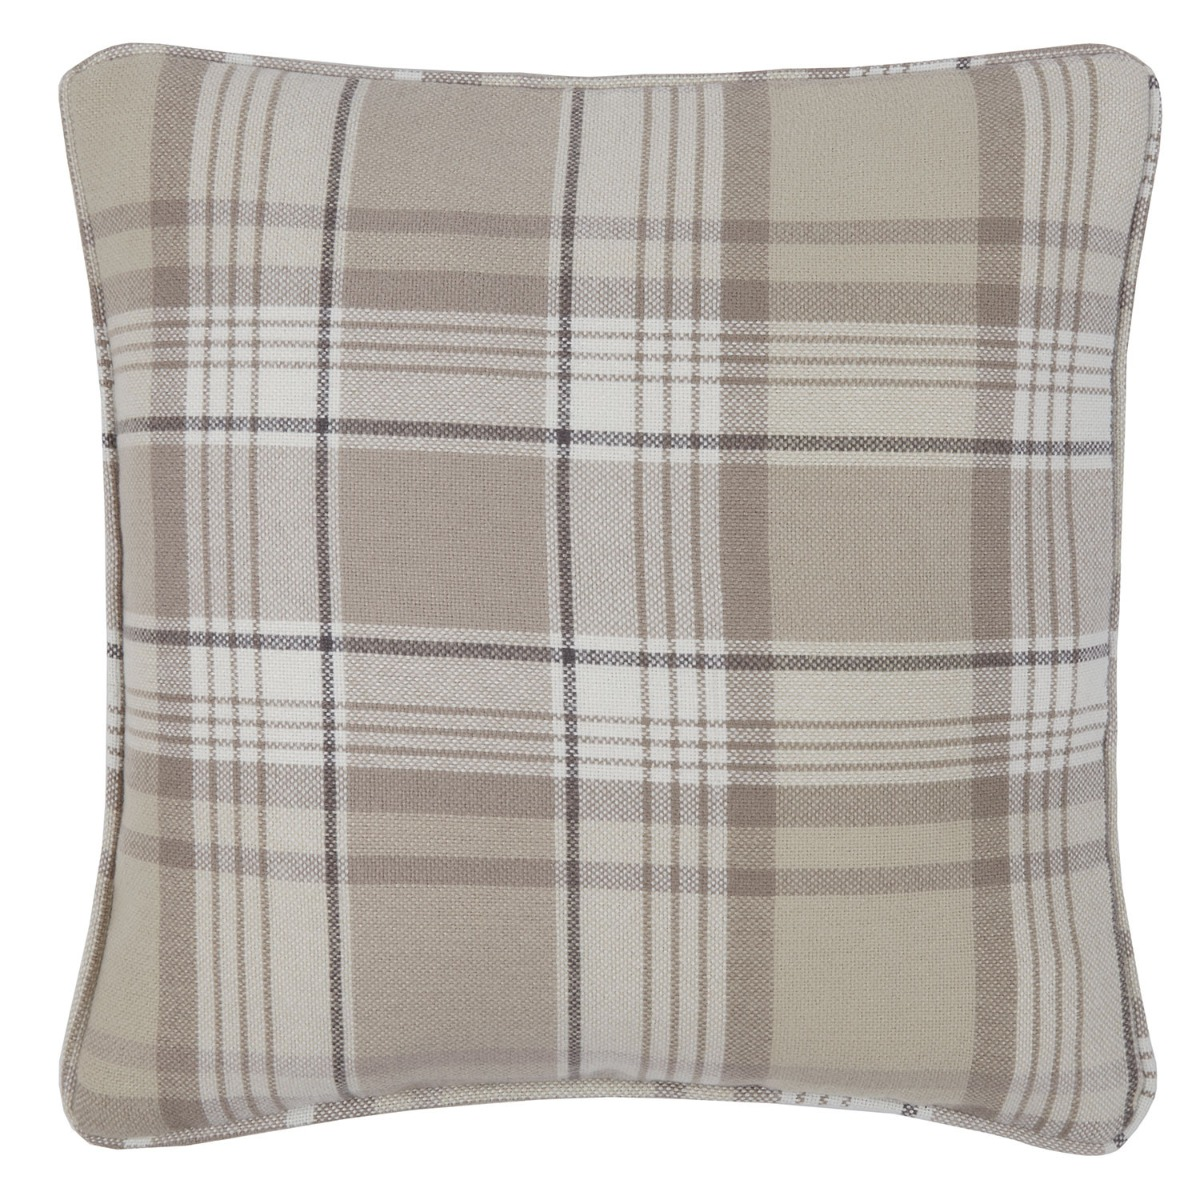 Balmoral Natural Check Filled Square Cushion